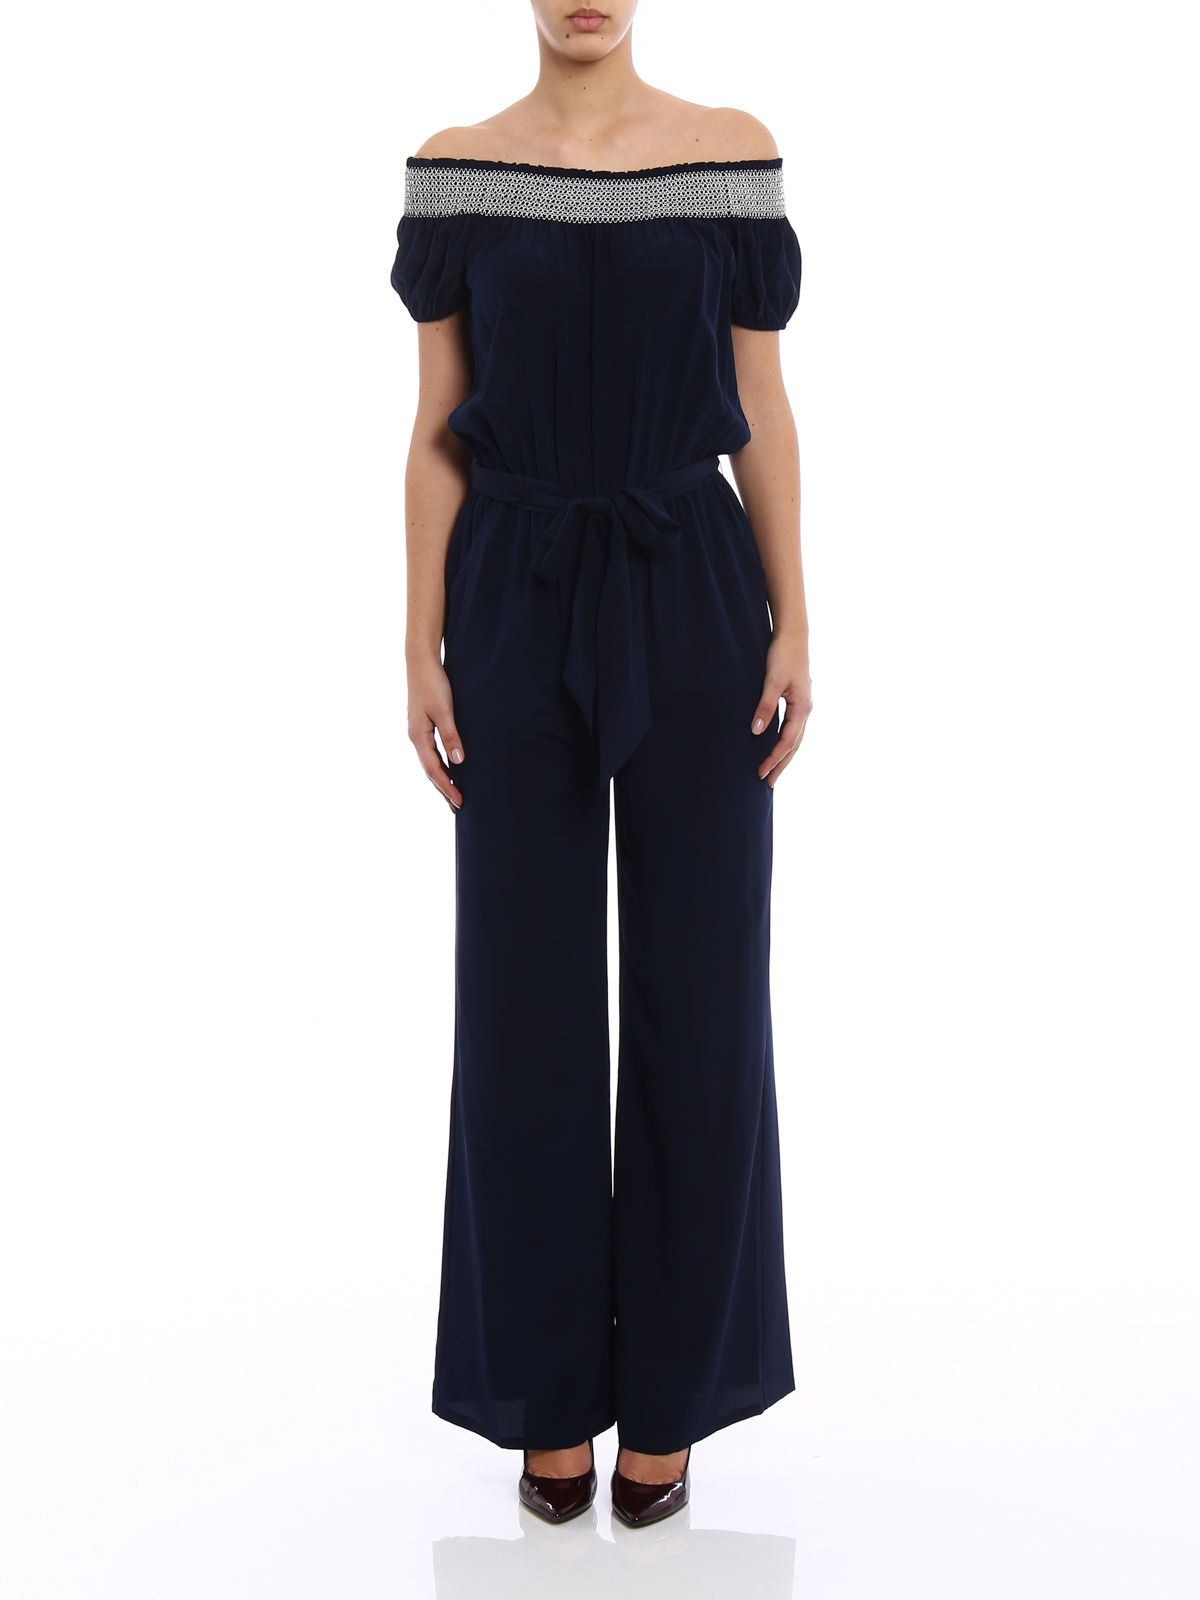 Find Great For Sale Discount Finishline Misty silk jumpsuit Tory Burch 1Tsqd